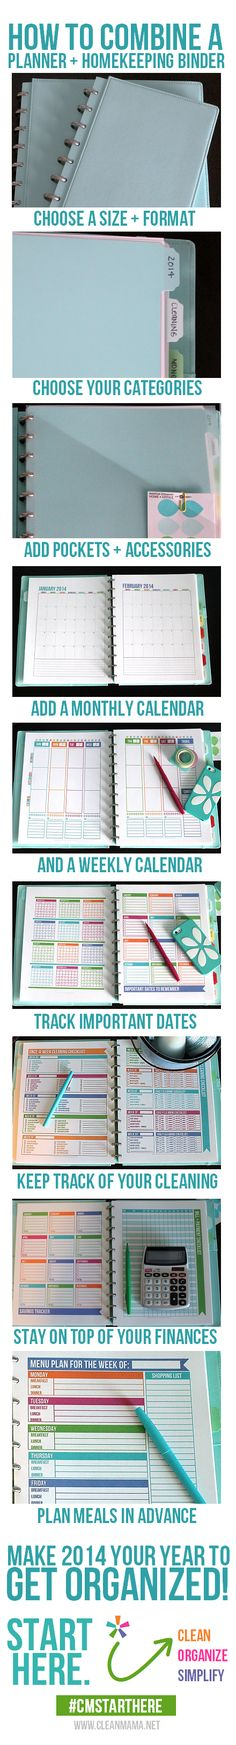 to Combine Your Planner + Homekeeping Binder Start Here. Week 1 - Calendar + Bill Pay (How to Combine Your Planner + Homekeeping Binder) - Clean MamaStart Here. Week 1 - Calendar + Bill Pay (How to Combine Your Planner + Homekeeping Binder) - Clean Mama Organisation Hacks, Storage Organization, College Planner Organization, Planner Stickers, Printable Planner, Free Printables, Planner Bullet Journal, Life Planner, Binder Planner